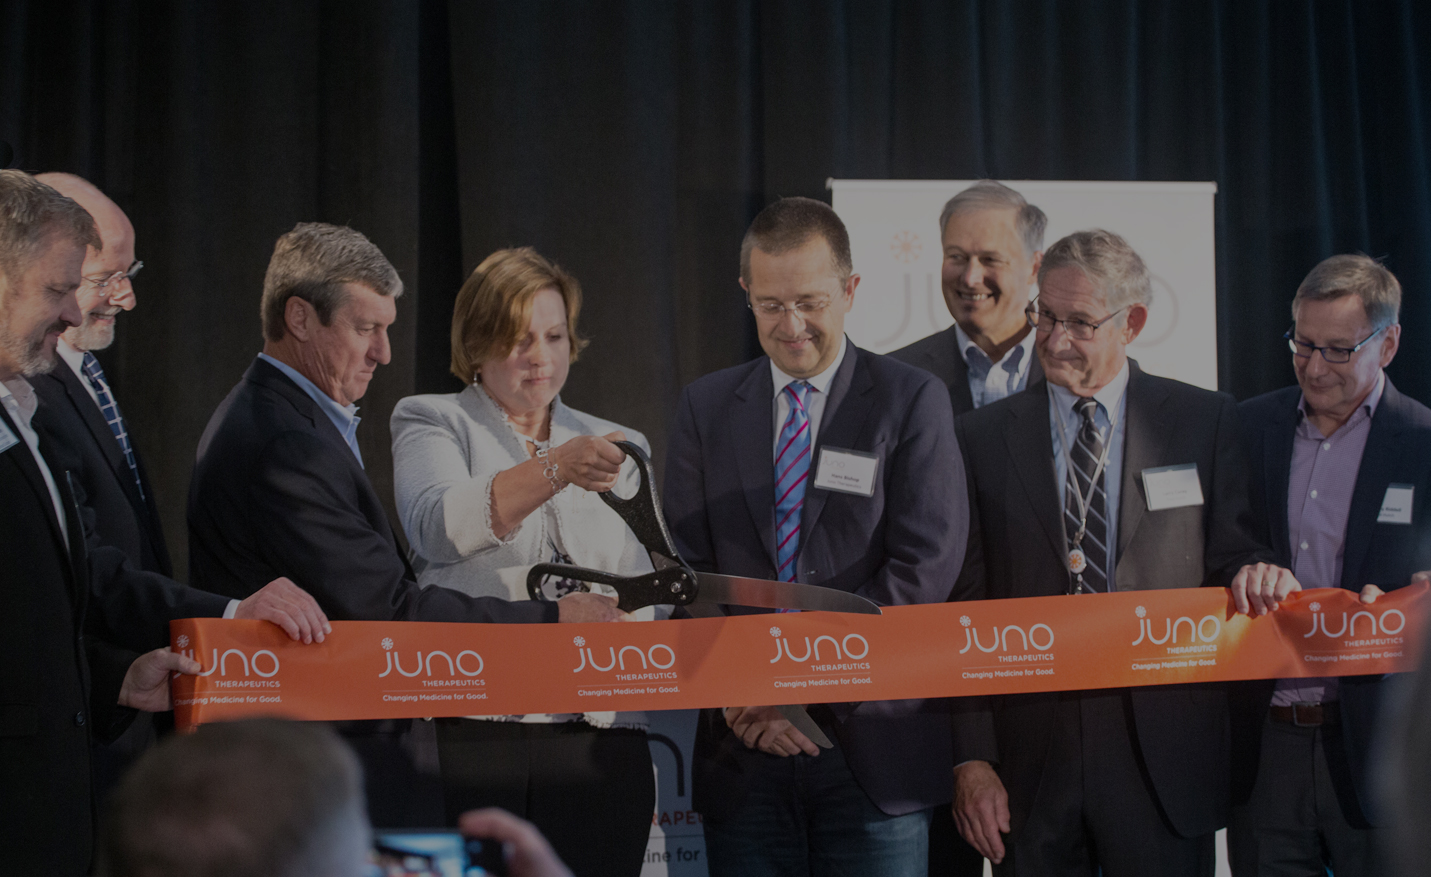 The executive team at Juno Therapeutics, a Seattle-based biotech company, cut the ribbon at their new headquarters.